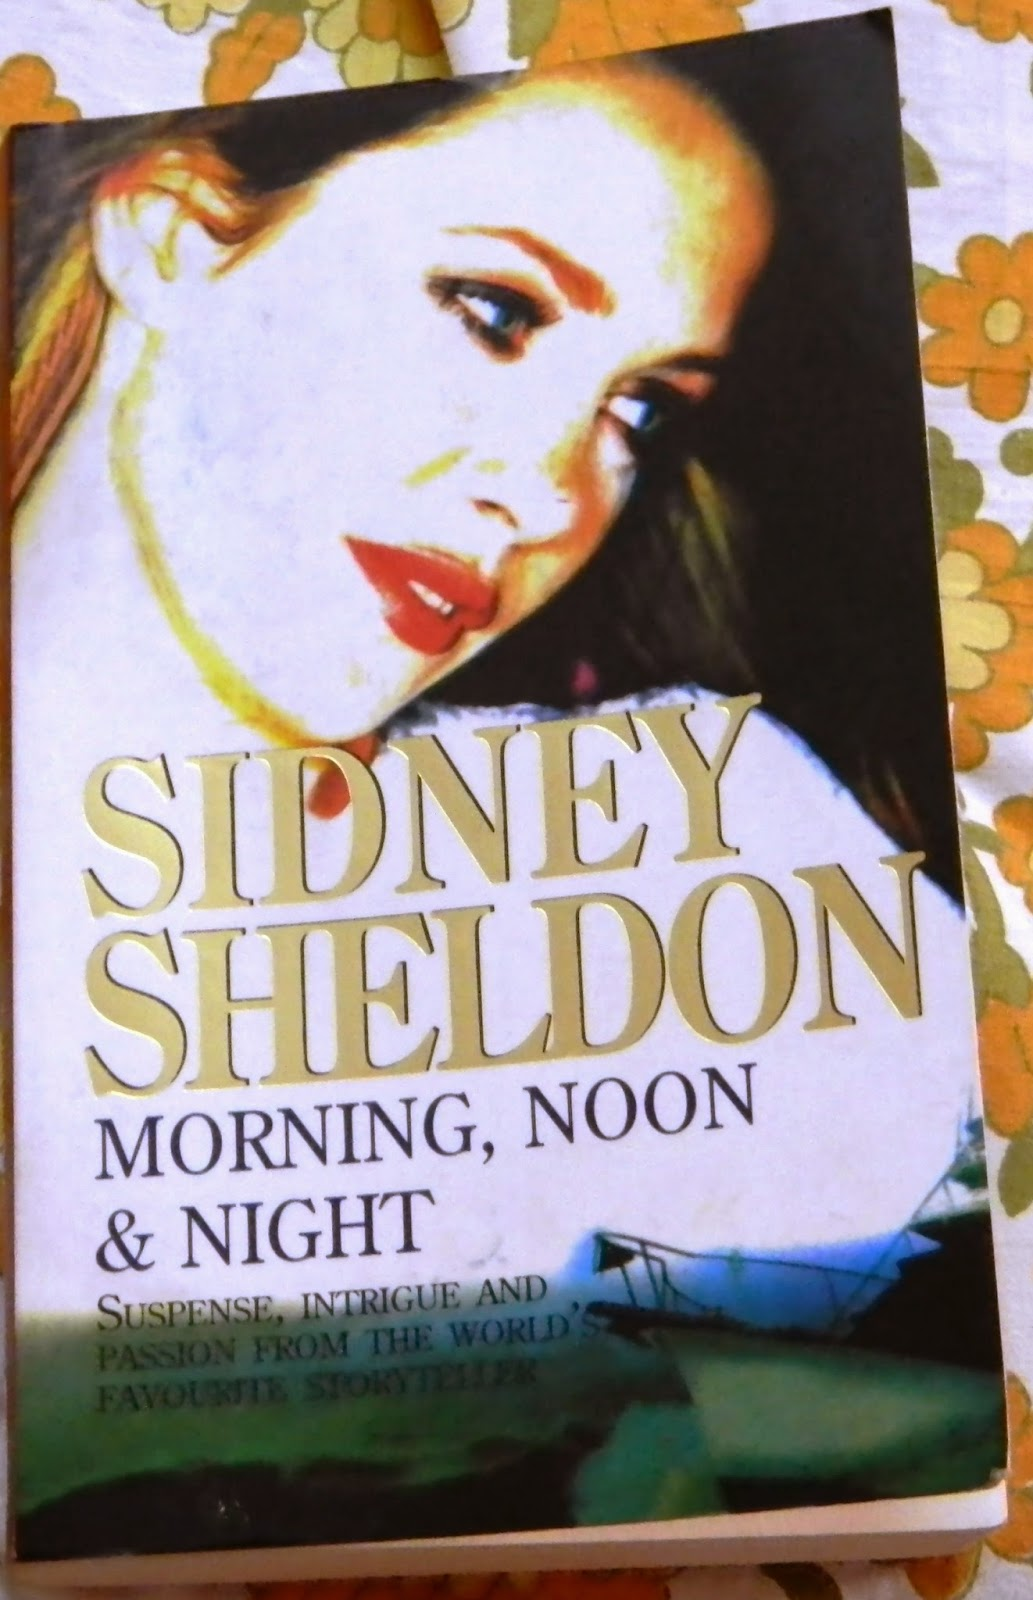 Morning, Noon & Night by Sidney Sheldon cover